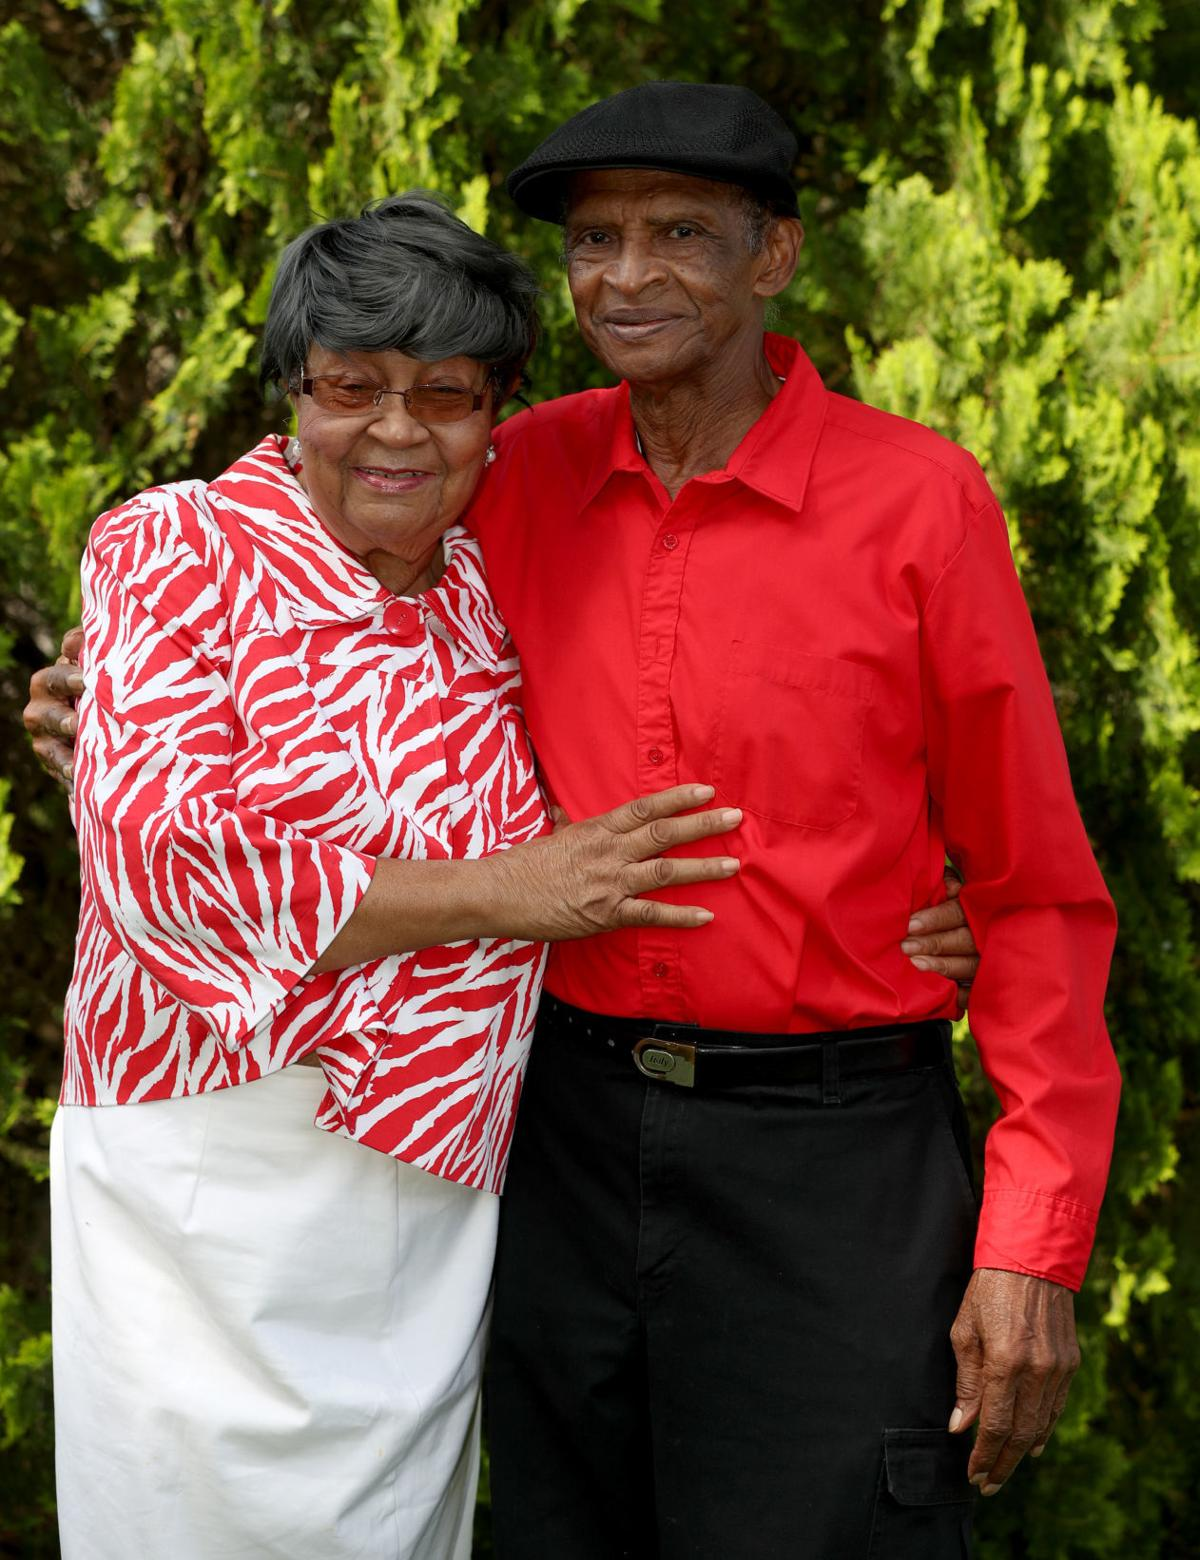 Couples married more than 60 years